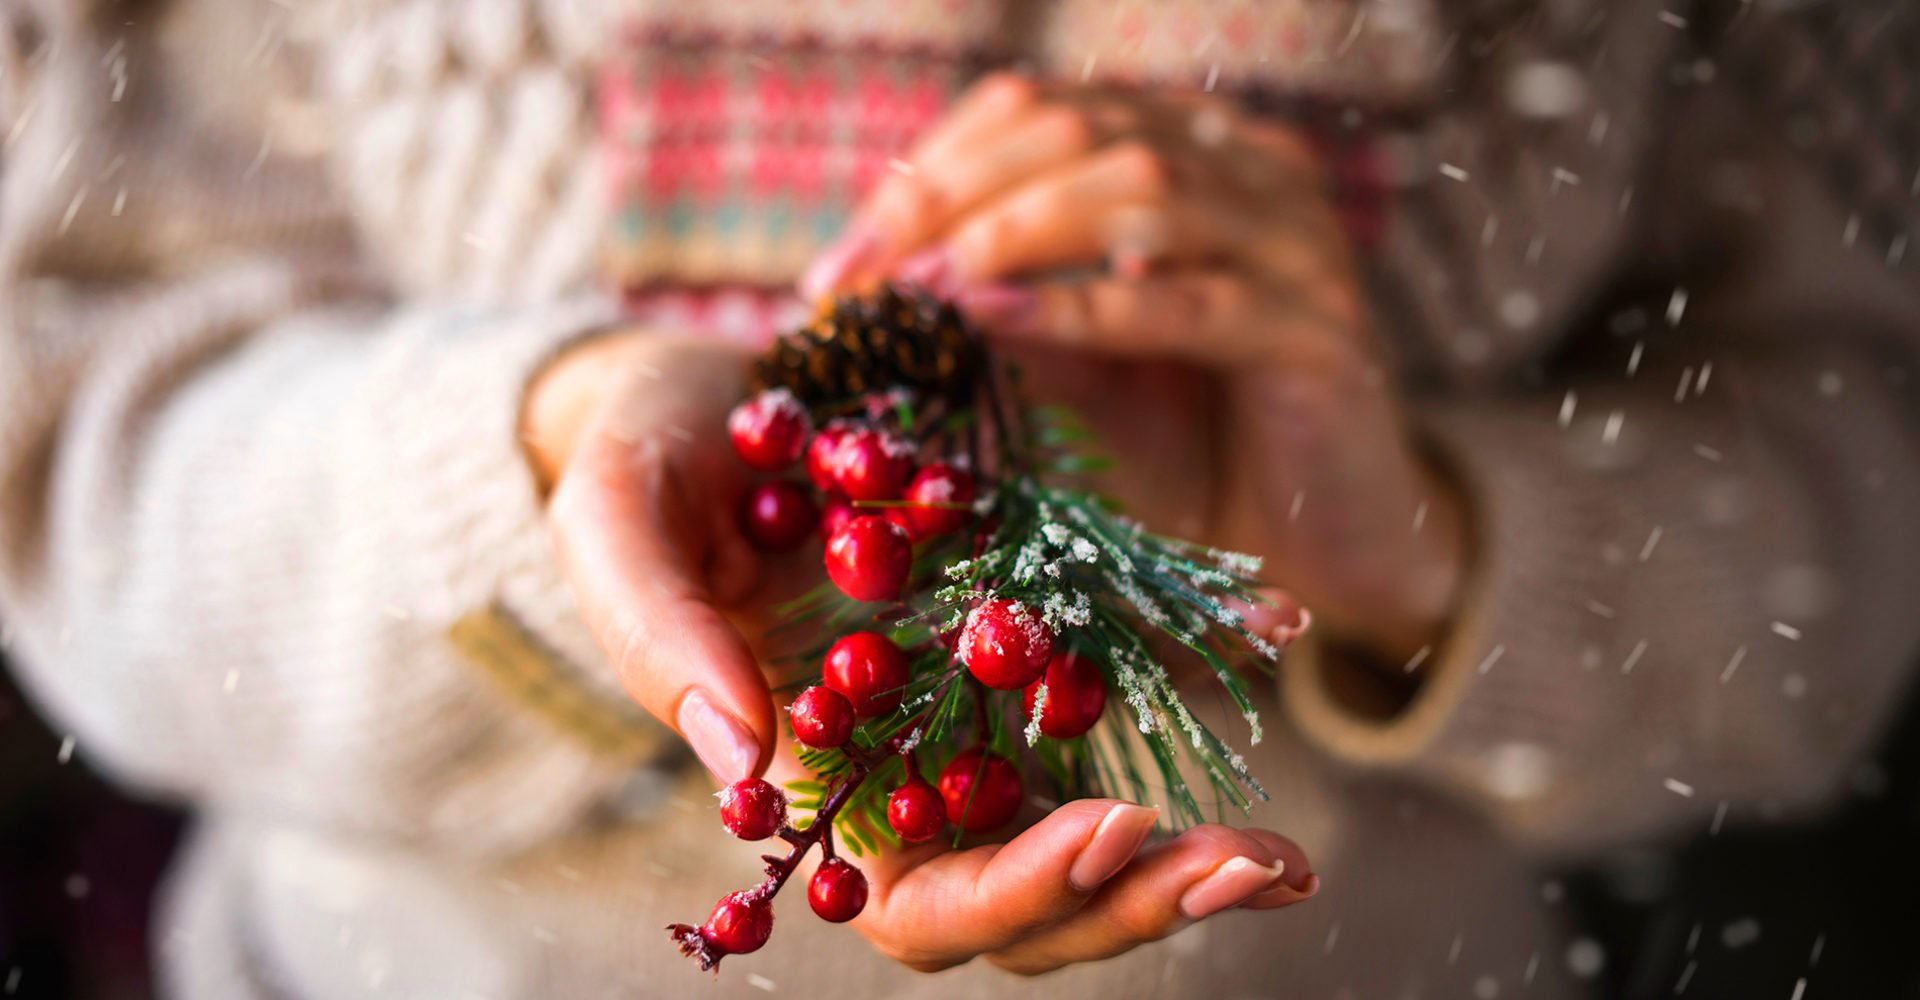 A woman in a beige knitted sweater holds in her hands a Christmas decorative ornament - a branch with red berries.; Shutterstock ID 1505358620; Purchase Order: -